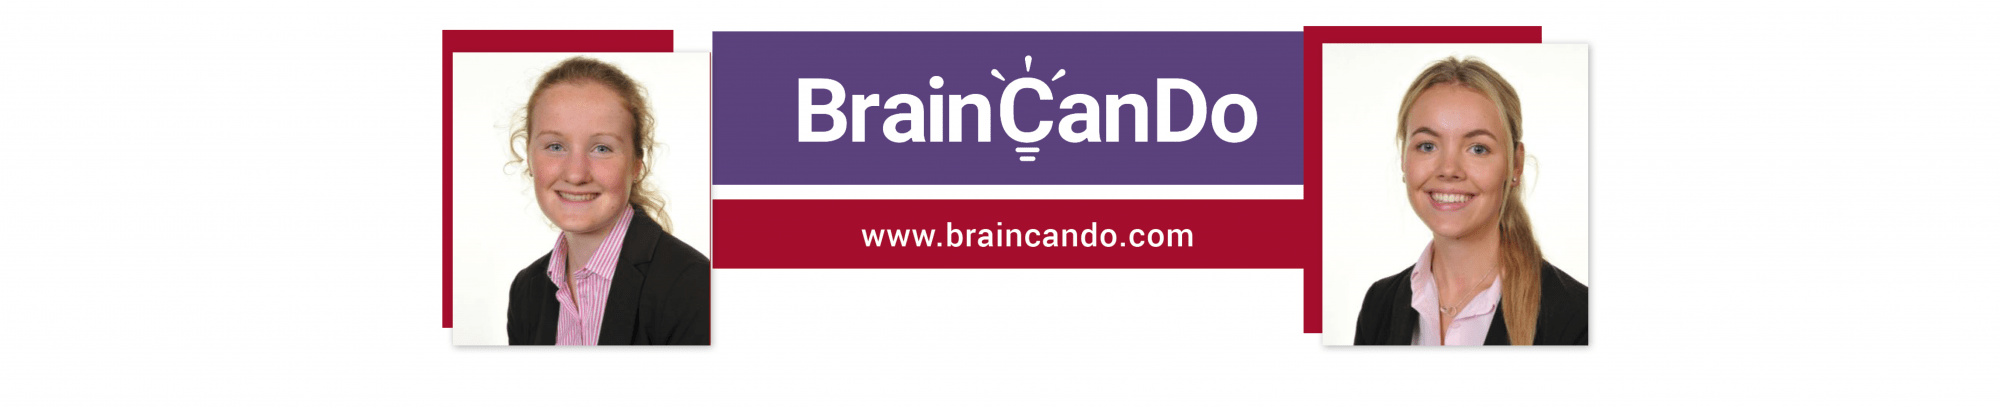 Image for Queen Anne's students experience positive learning through BrainCanDo